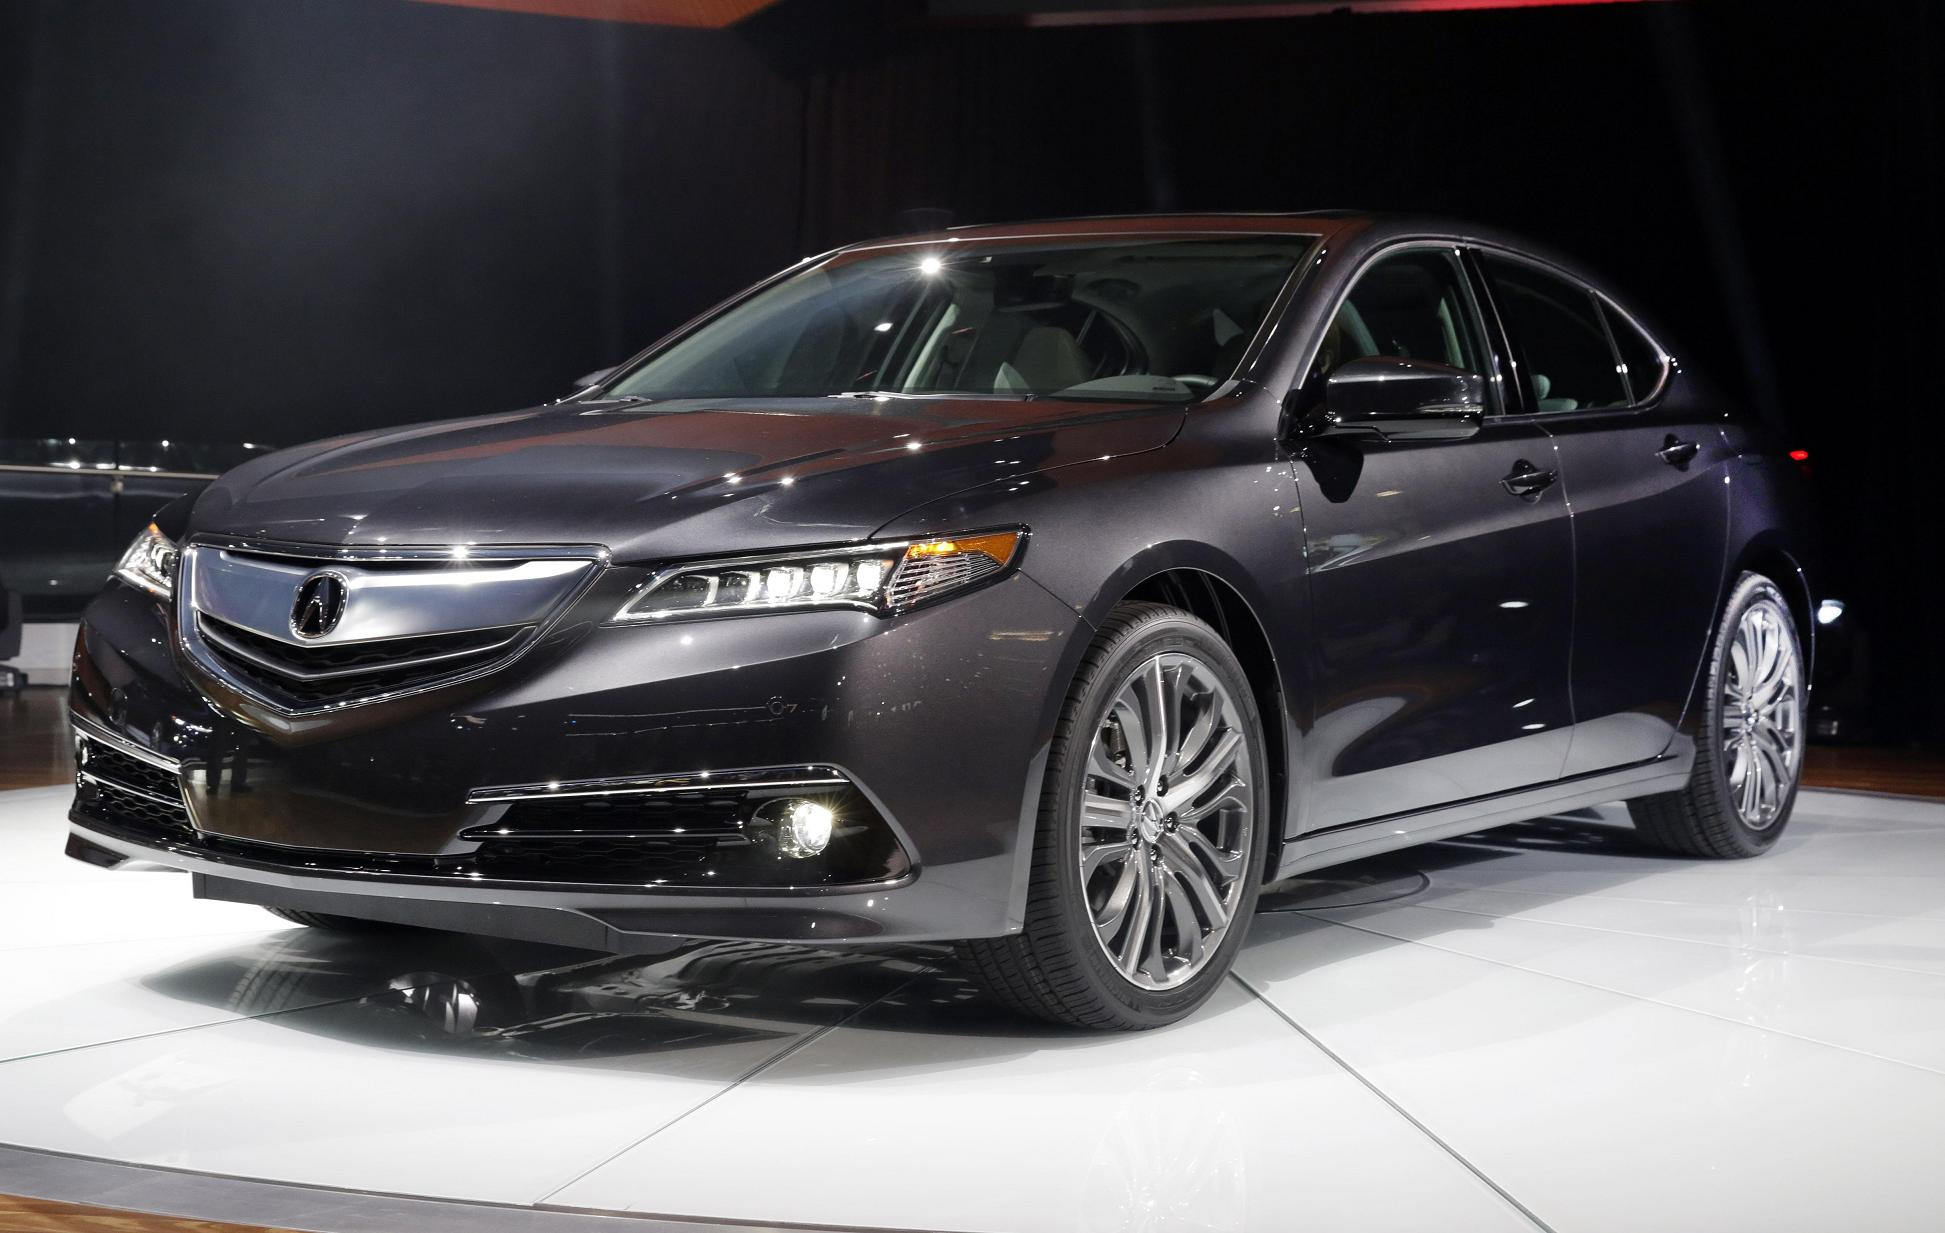 new 2015 Acura TLX, which is the successor to the previous Acura TL